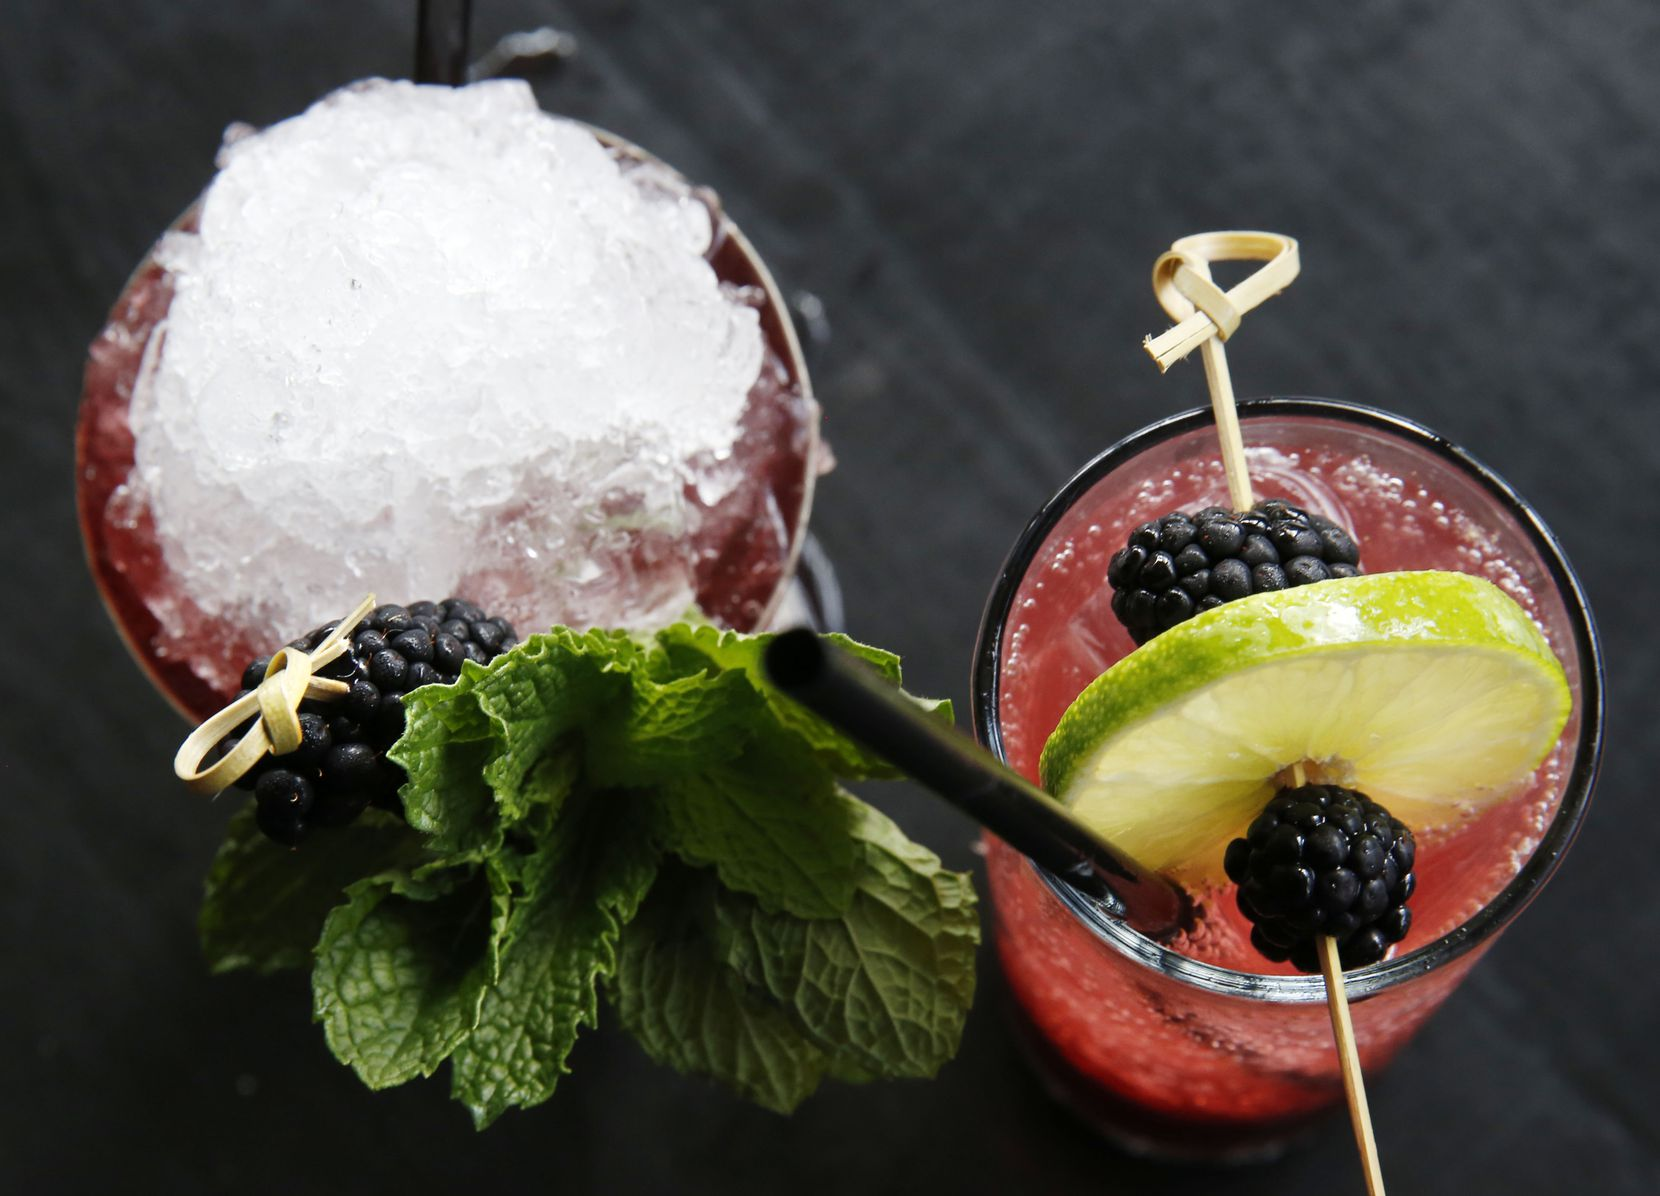 The Blackbird Julep and the Blackberry Shrub Cooler, photographed at The Standard Pour in Dallas in 2016